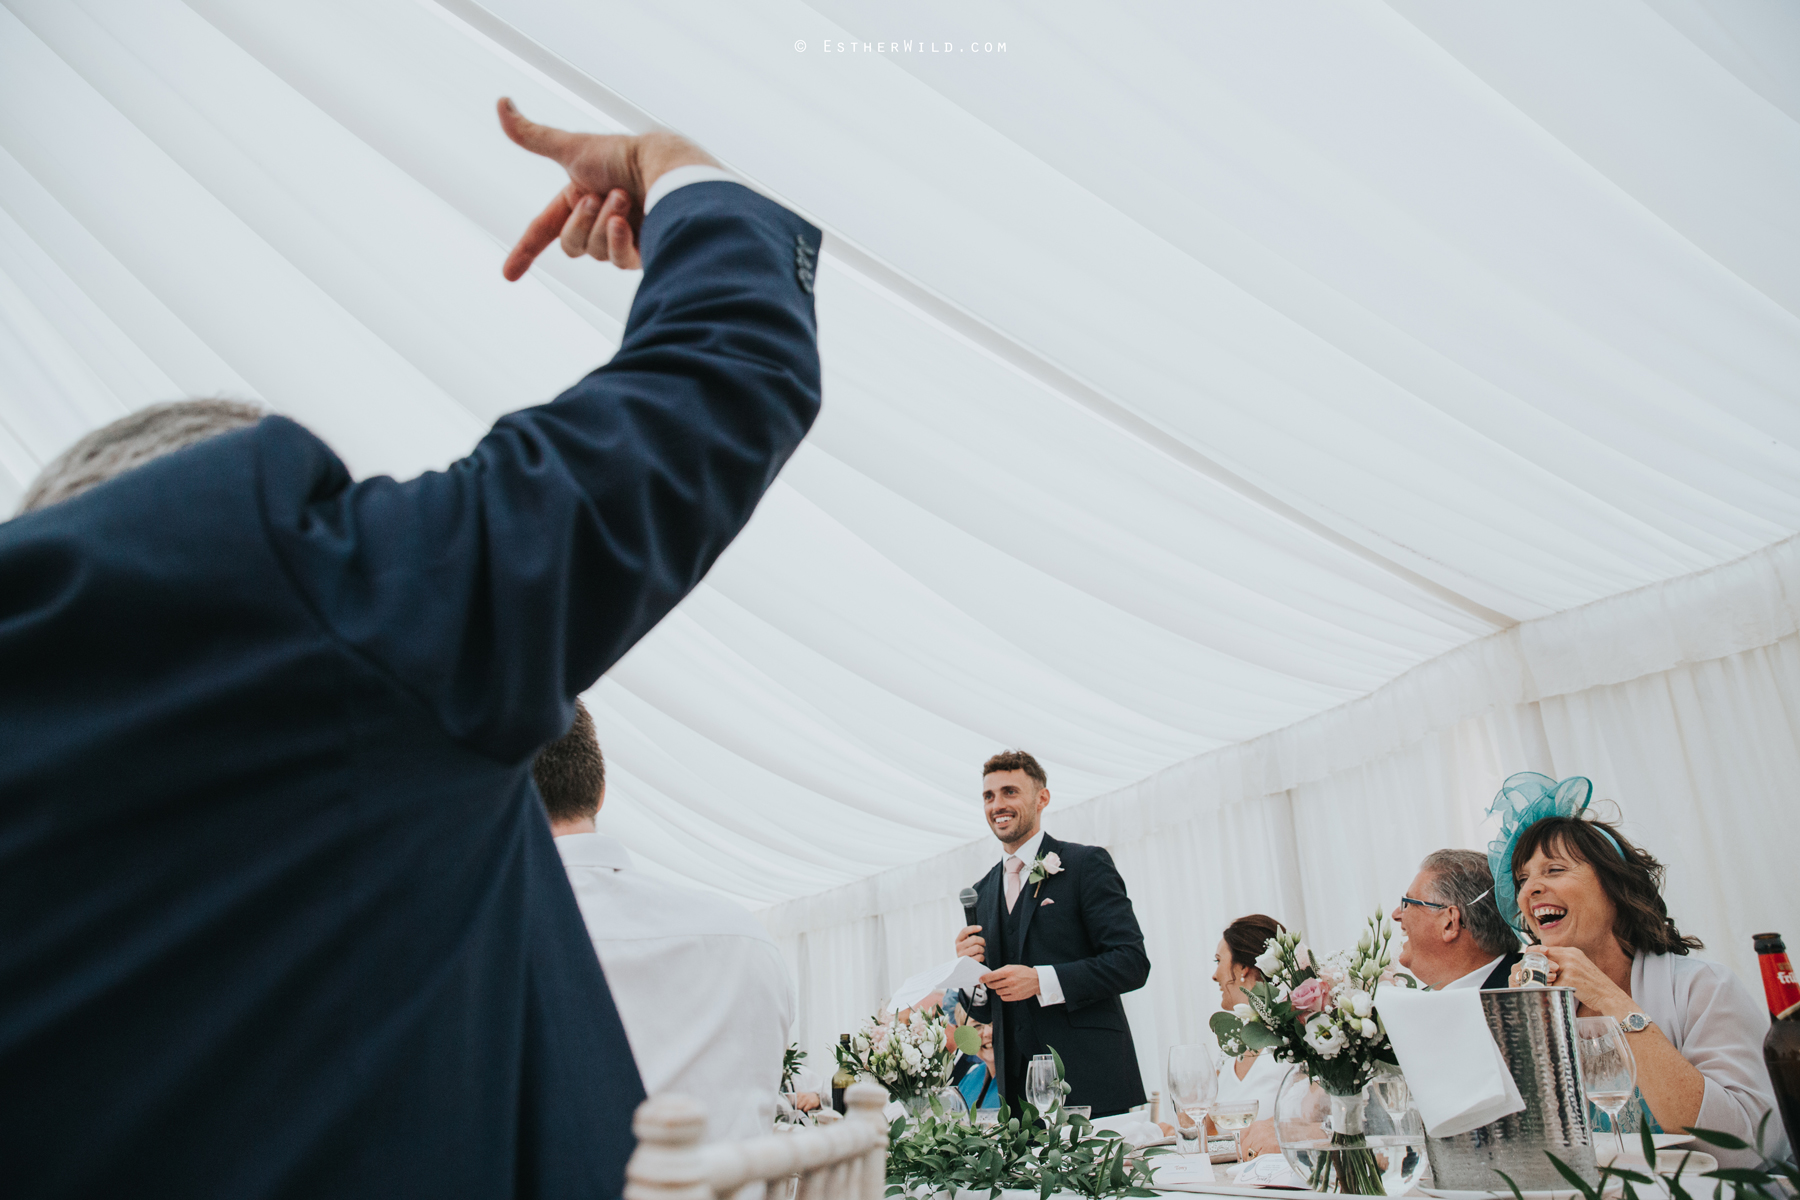 Wootton_Wedding_Copyright_Esther_Wild_Photographer_IMG_2720.jpg